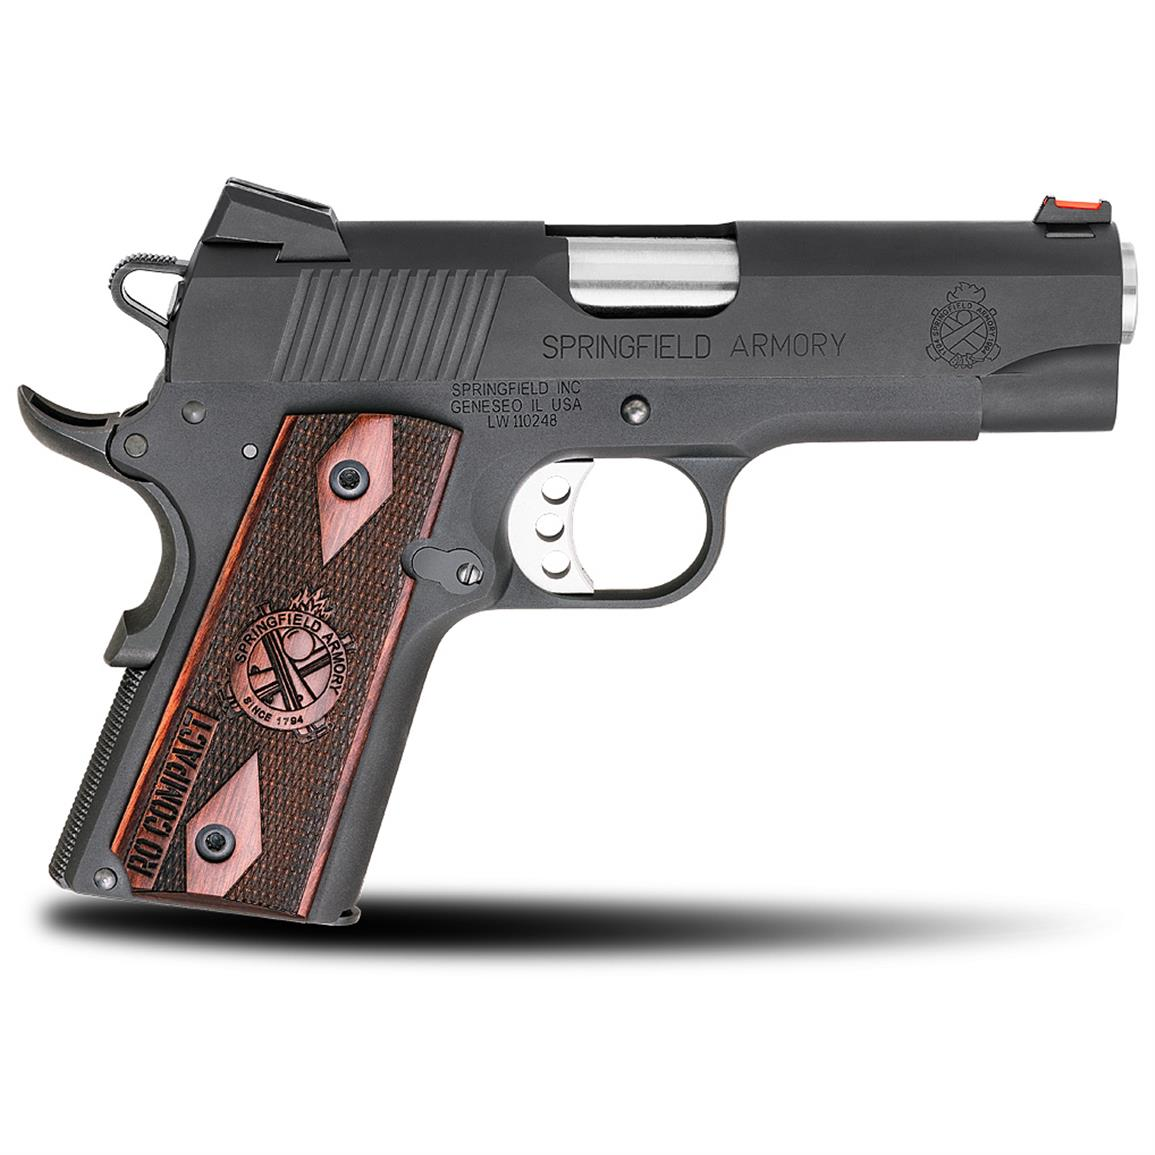 Springfield 1911 Range Officer Compact, Semi-automatic, .45 ACP, PI9126LP, 706397897222